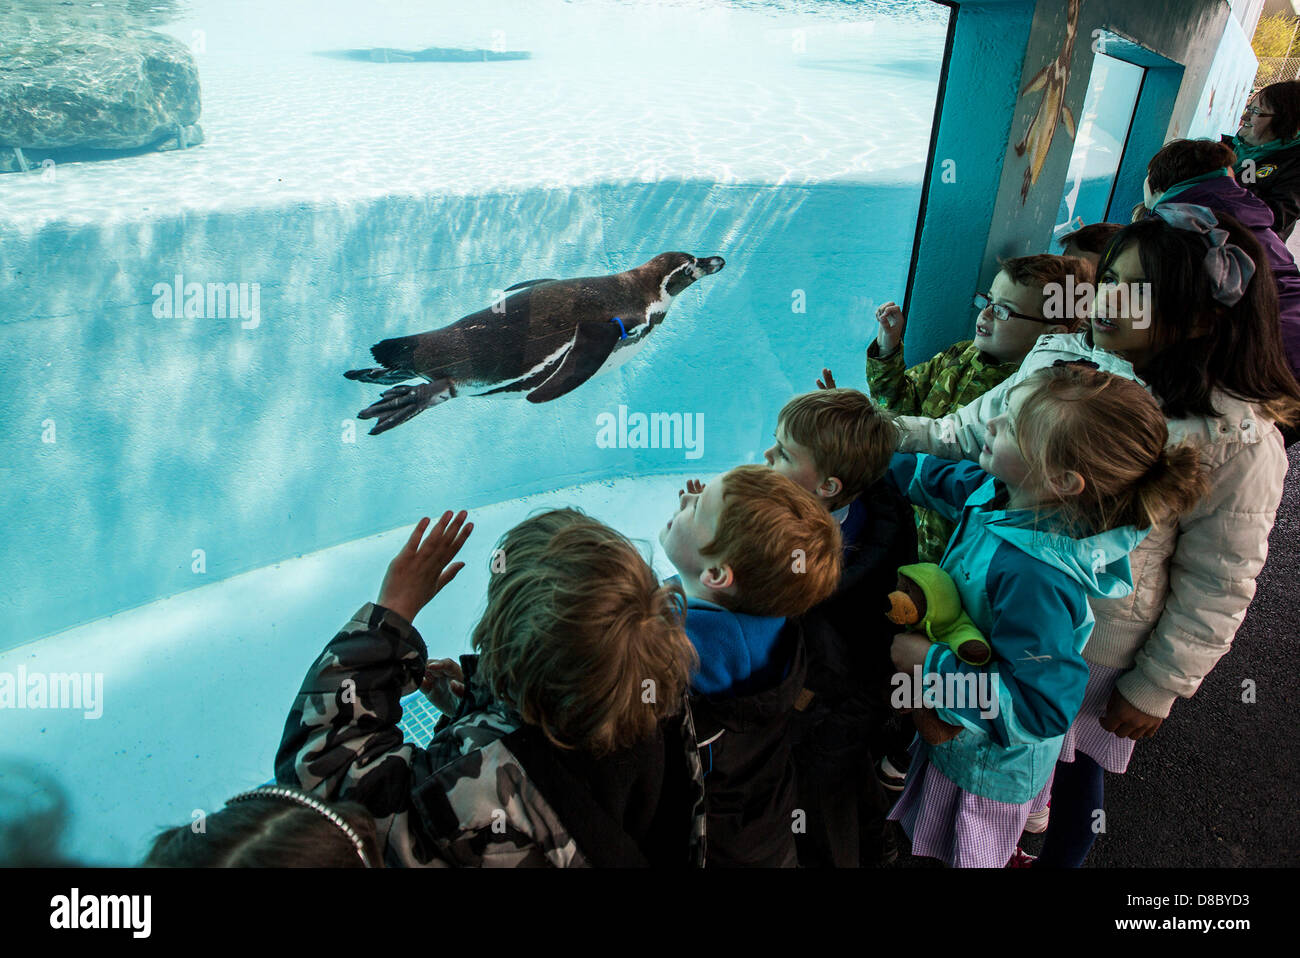 Tenby, Pembrokeshire, UK. 24th May 2013. 24.05.13 Children take a look at the Humboldt Penguins at the new Penguin Stock Photo